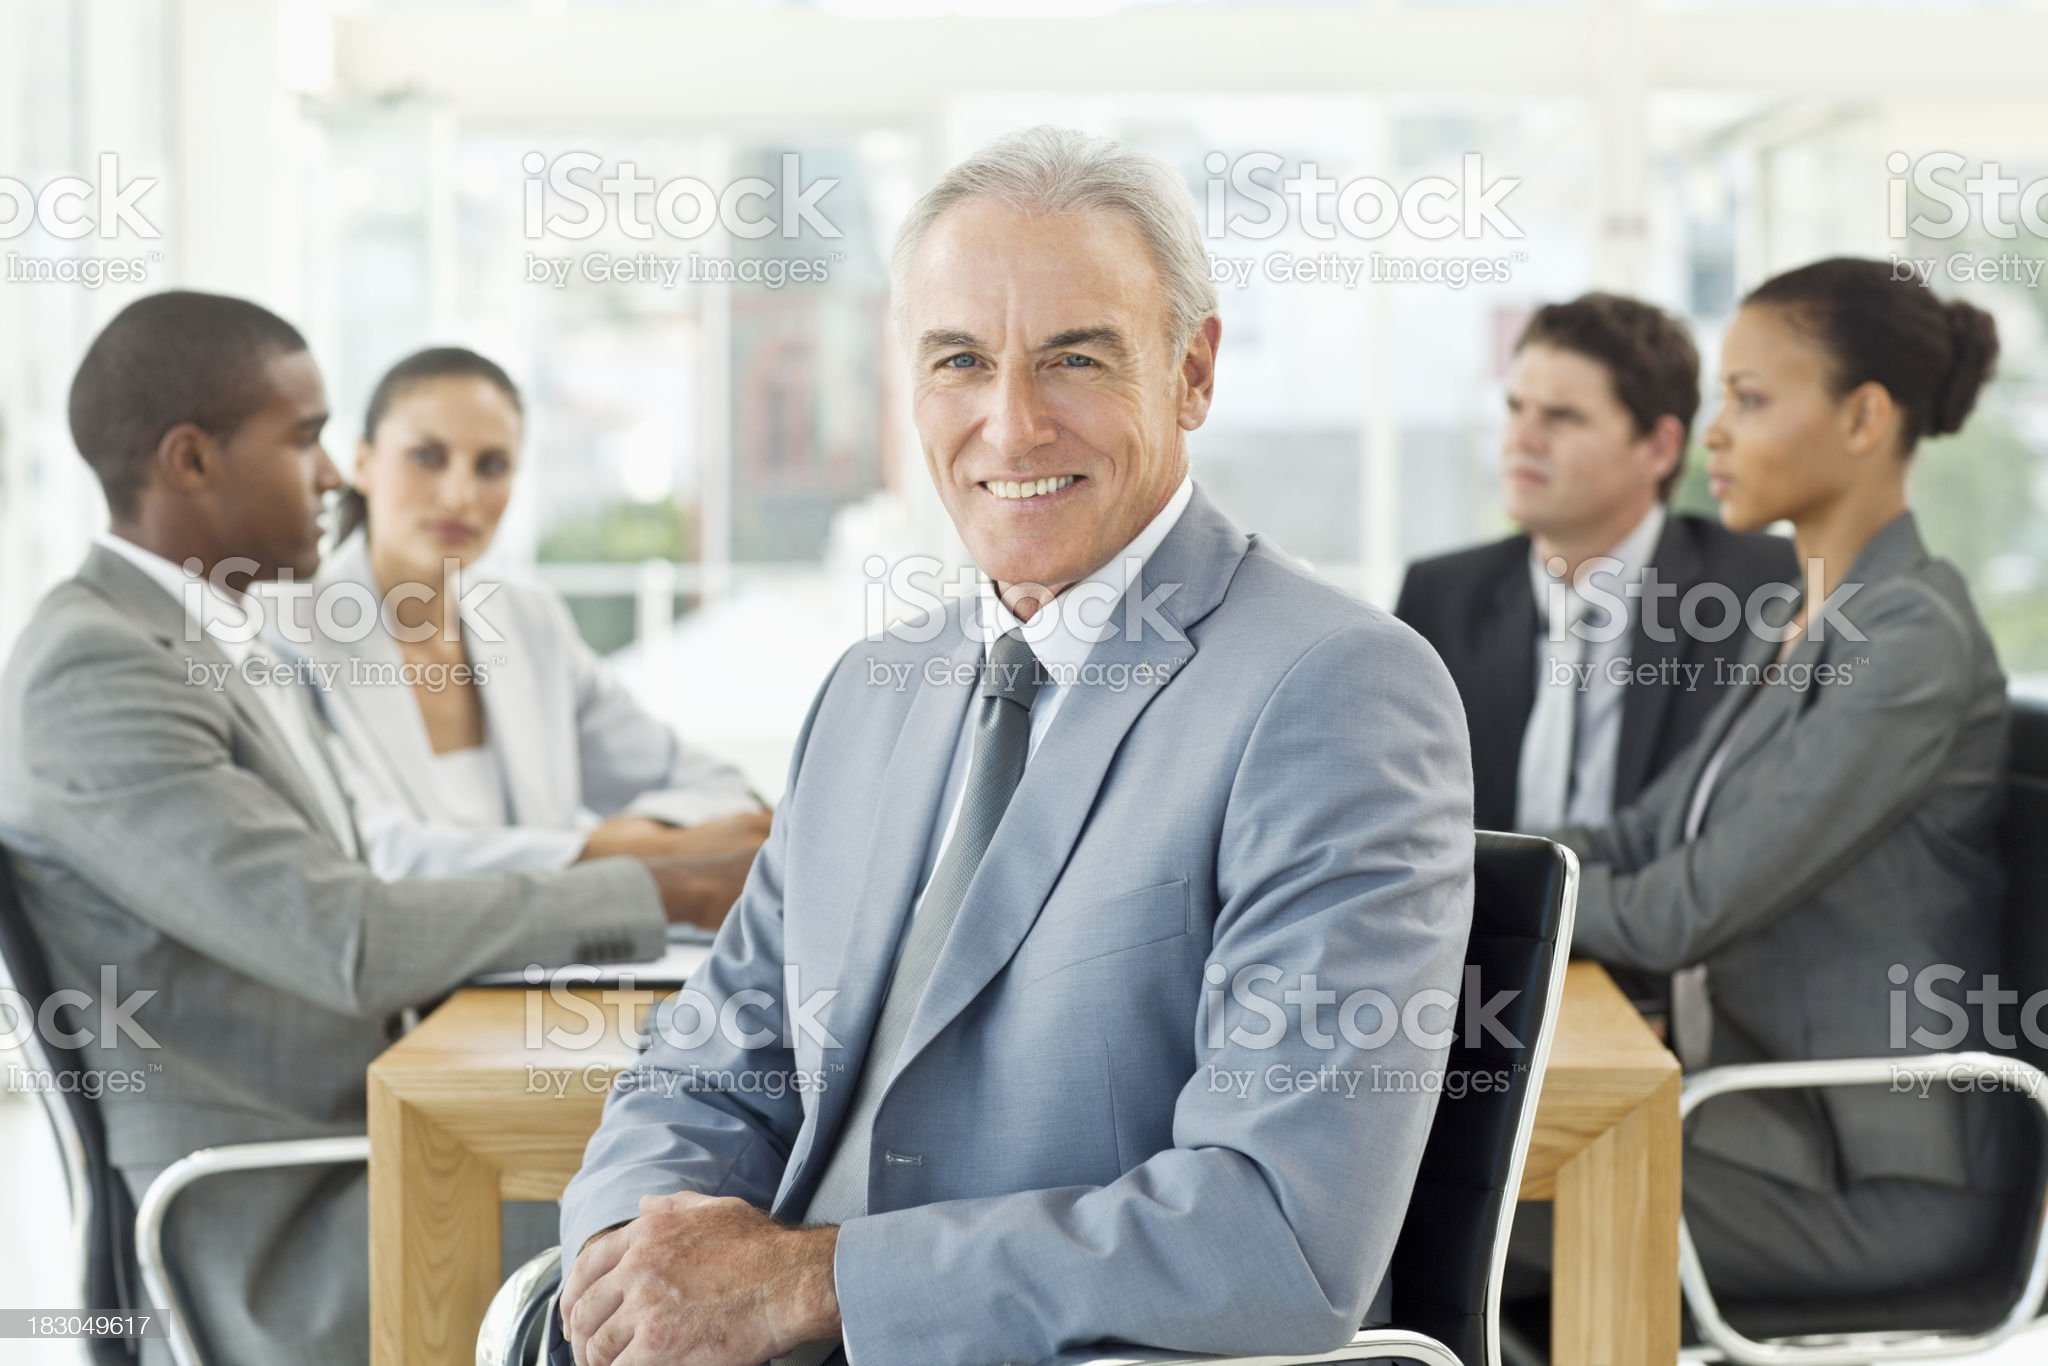 Businessman Posing at a Boardroom Meeting royalty-free stock photo